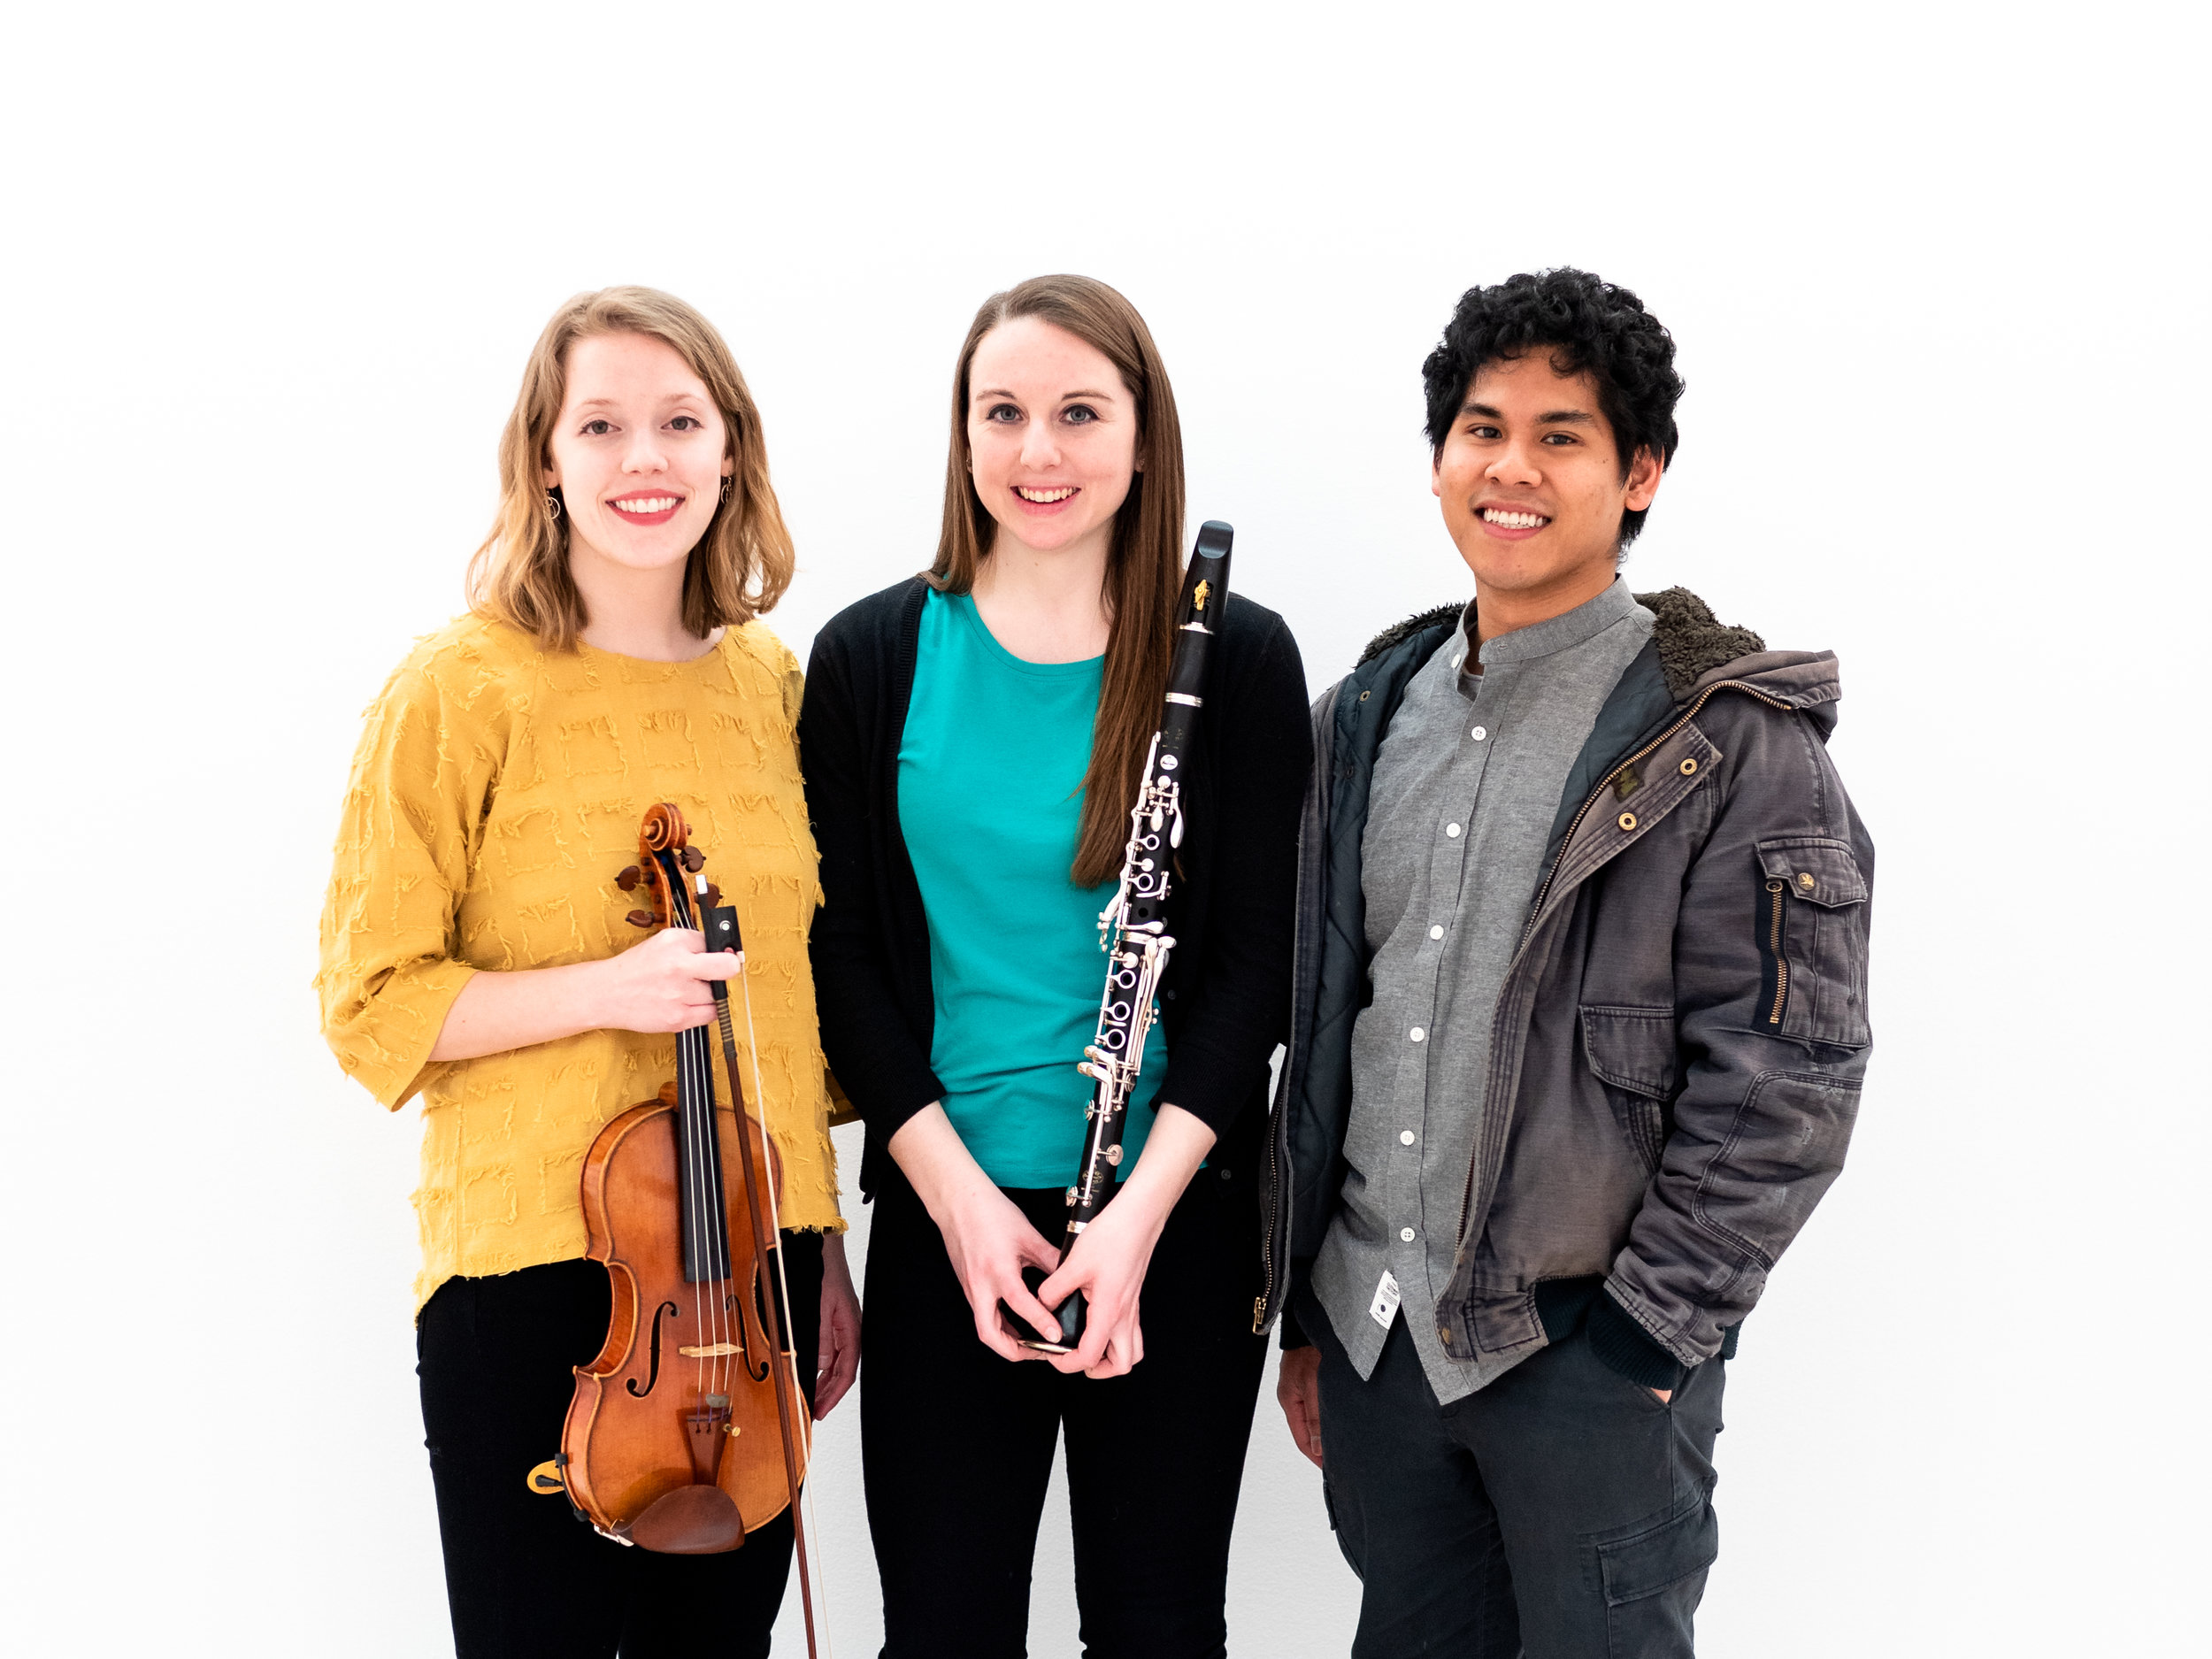 About - The Oasi Trio is dedicated to the performance of contemporary music, with a focus on presenting new and original compositions for all combinations of instruments in the ensemble—clarinet, violin, and piano.